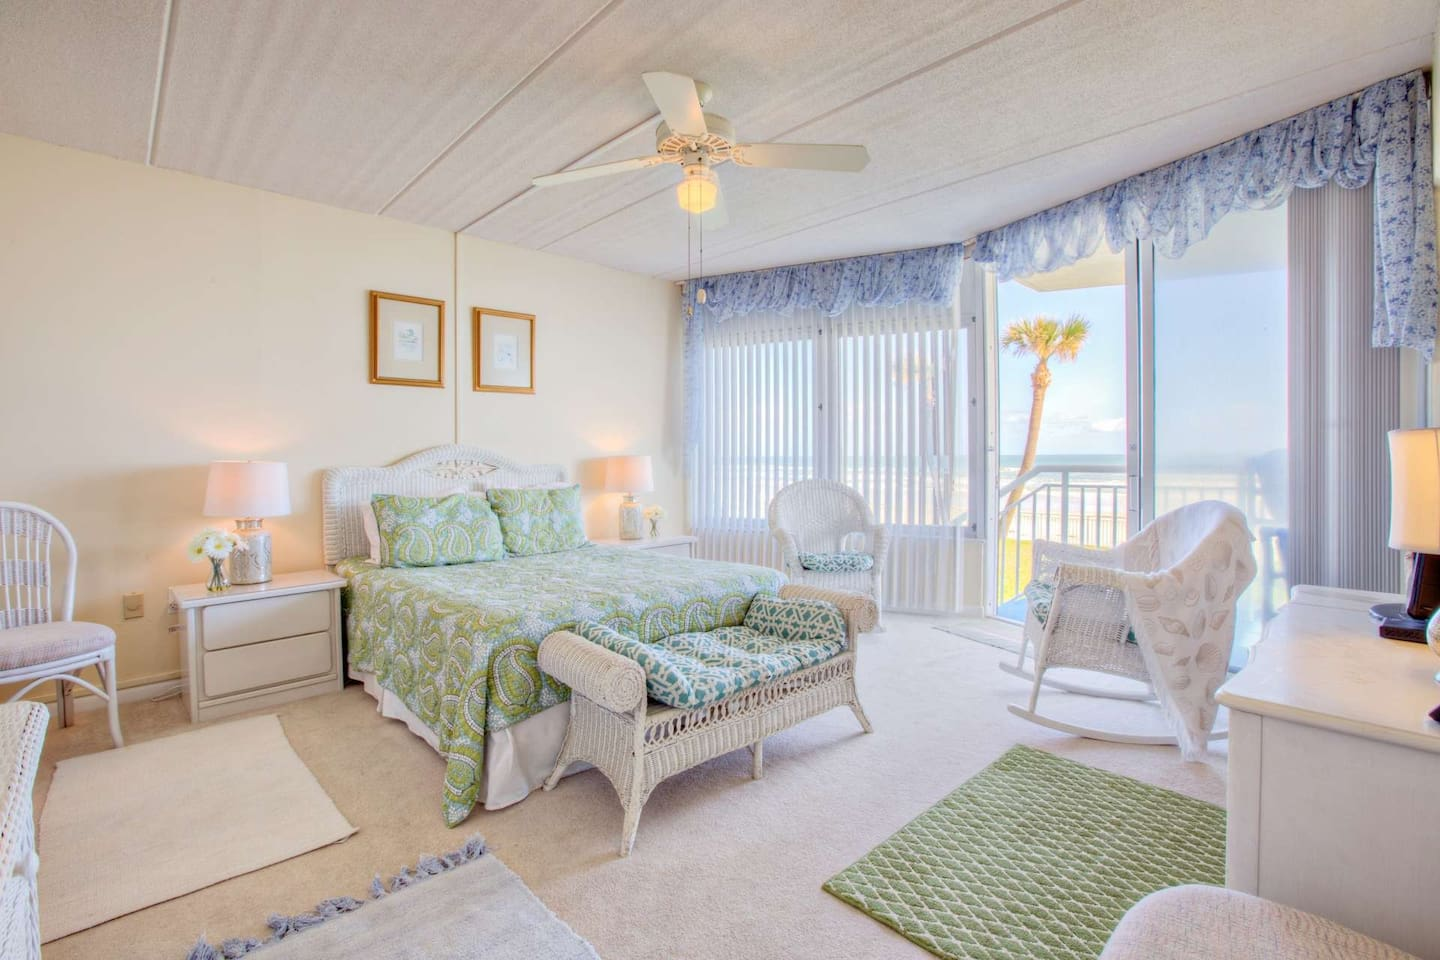 Beautiful and spacious master bedroom with direct views and access to the ocean.